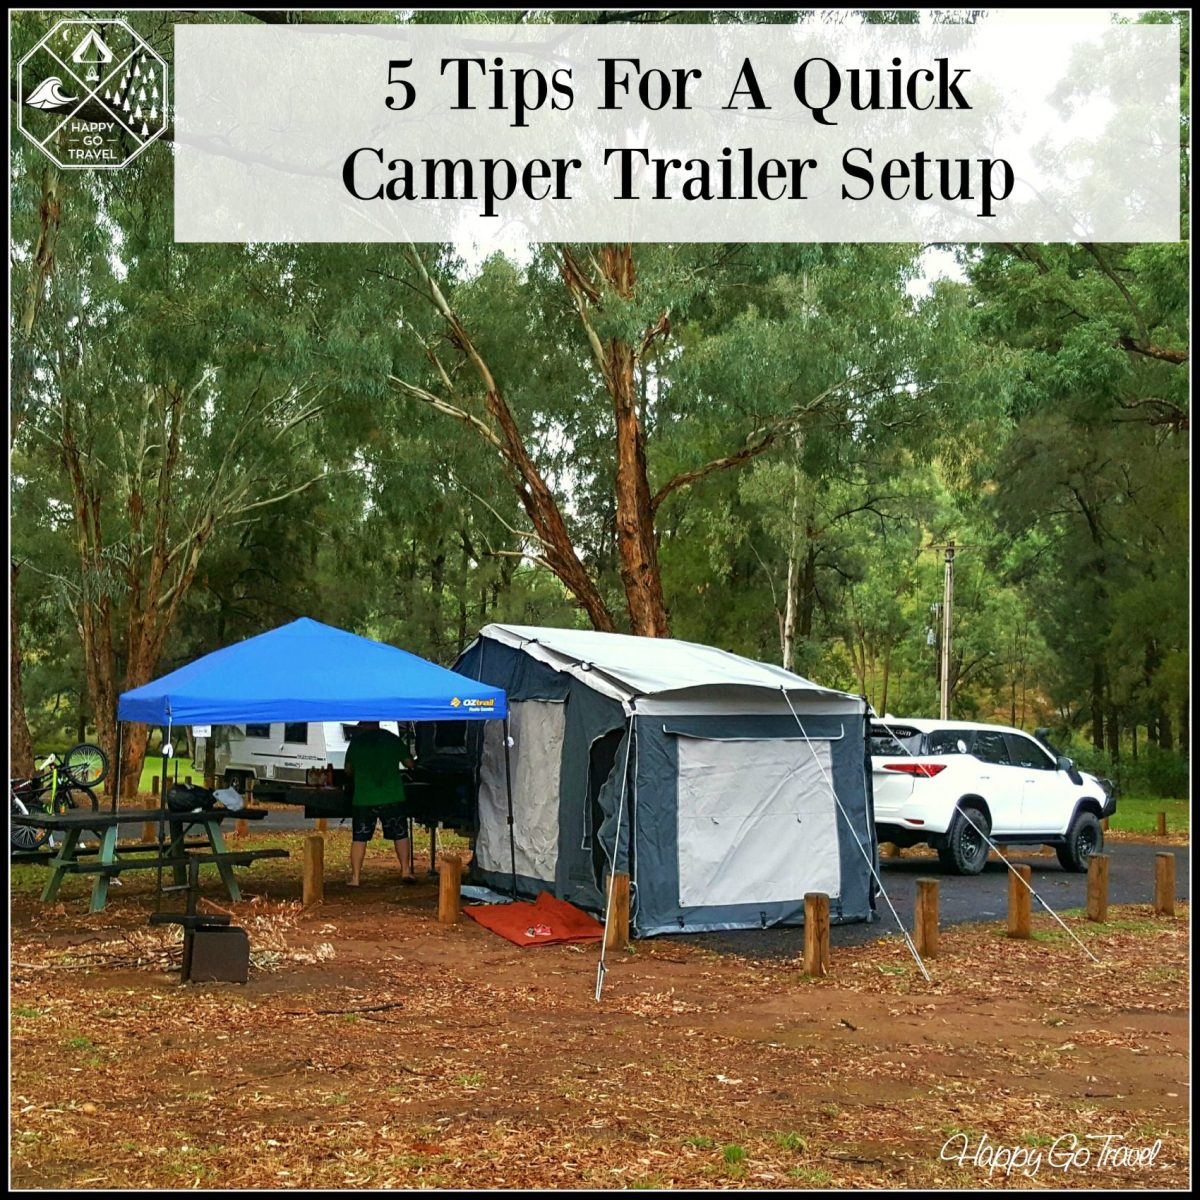 5 Tips For a Quick Camper Trailer Setup